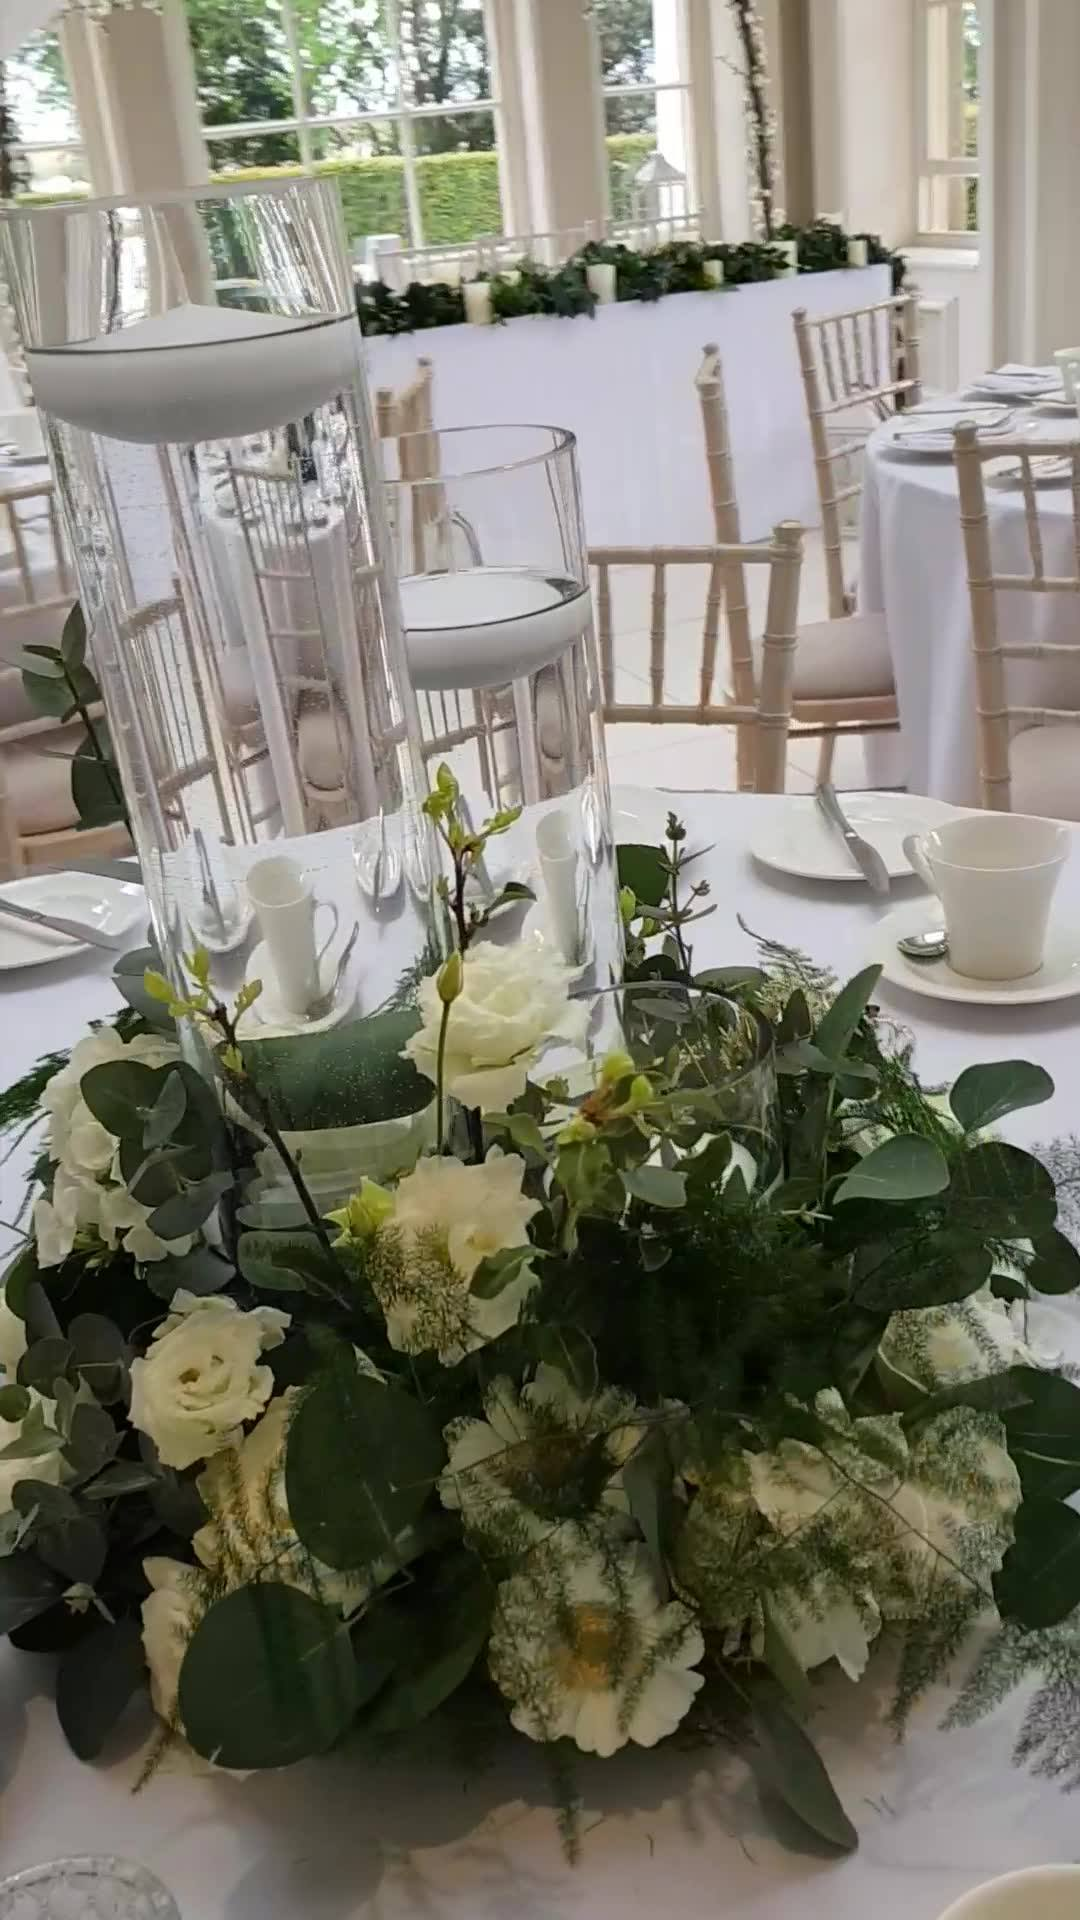 The beautiful wedding breakfast room at Saltmarshe Hall for Rachel & Kyle's wedding yesterday ... Hope you had a Wonderful day May the love and happiness you feel today shine through the years.  💋🌸❤️